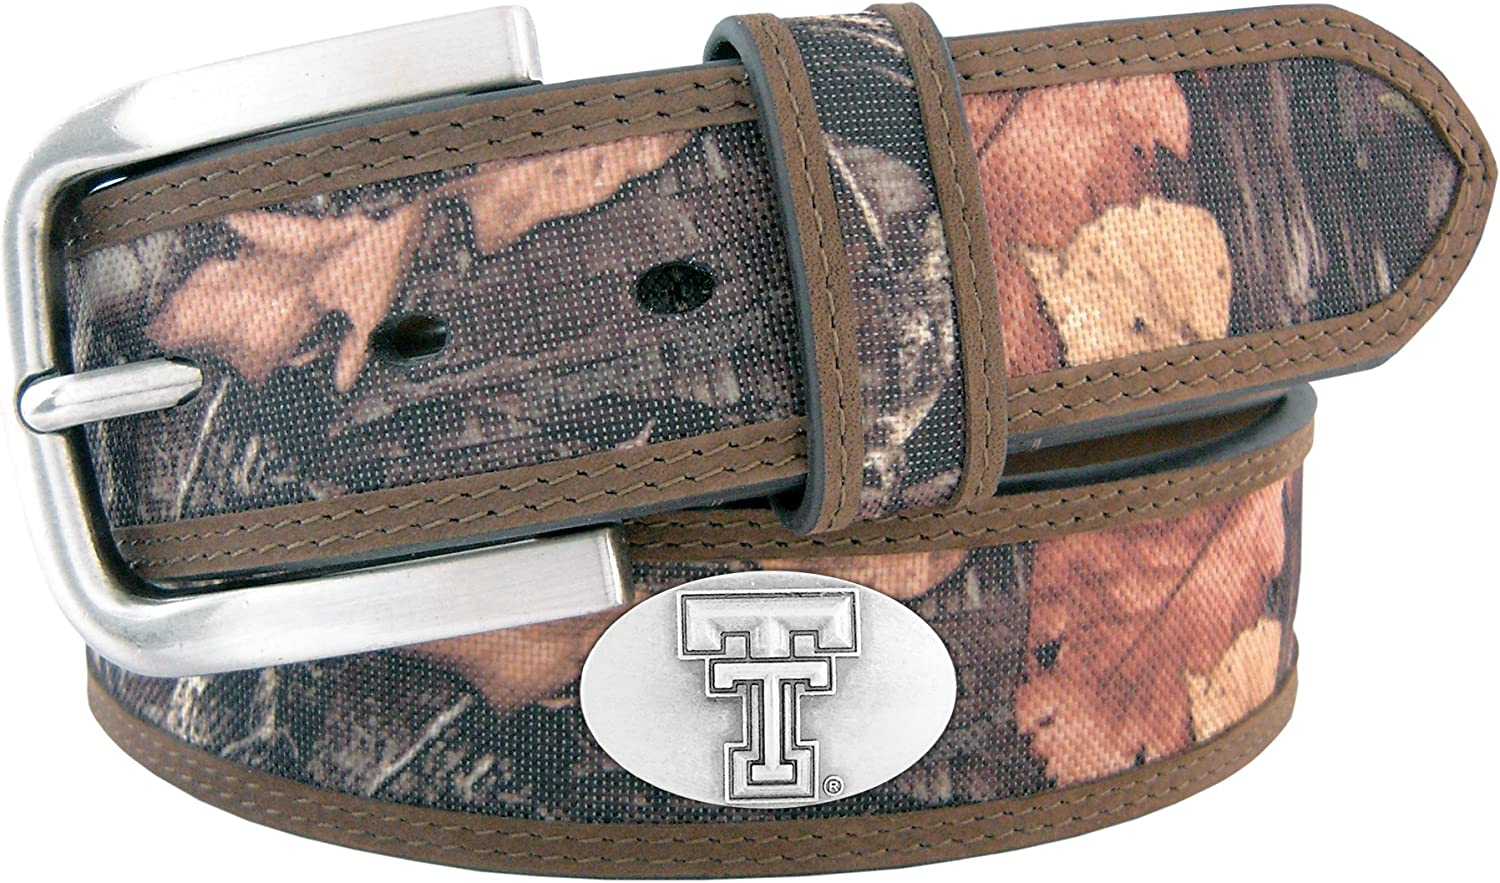 outlet NCAA Max 63% OFF Texas Tech Red Raiders Belt Camoufla Nylon Concho Fencerow